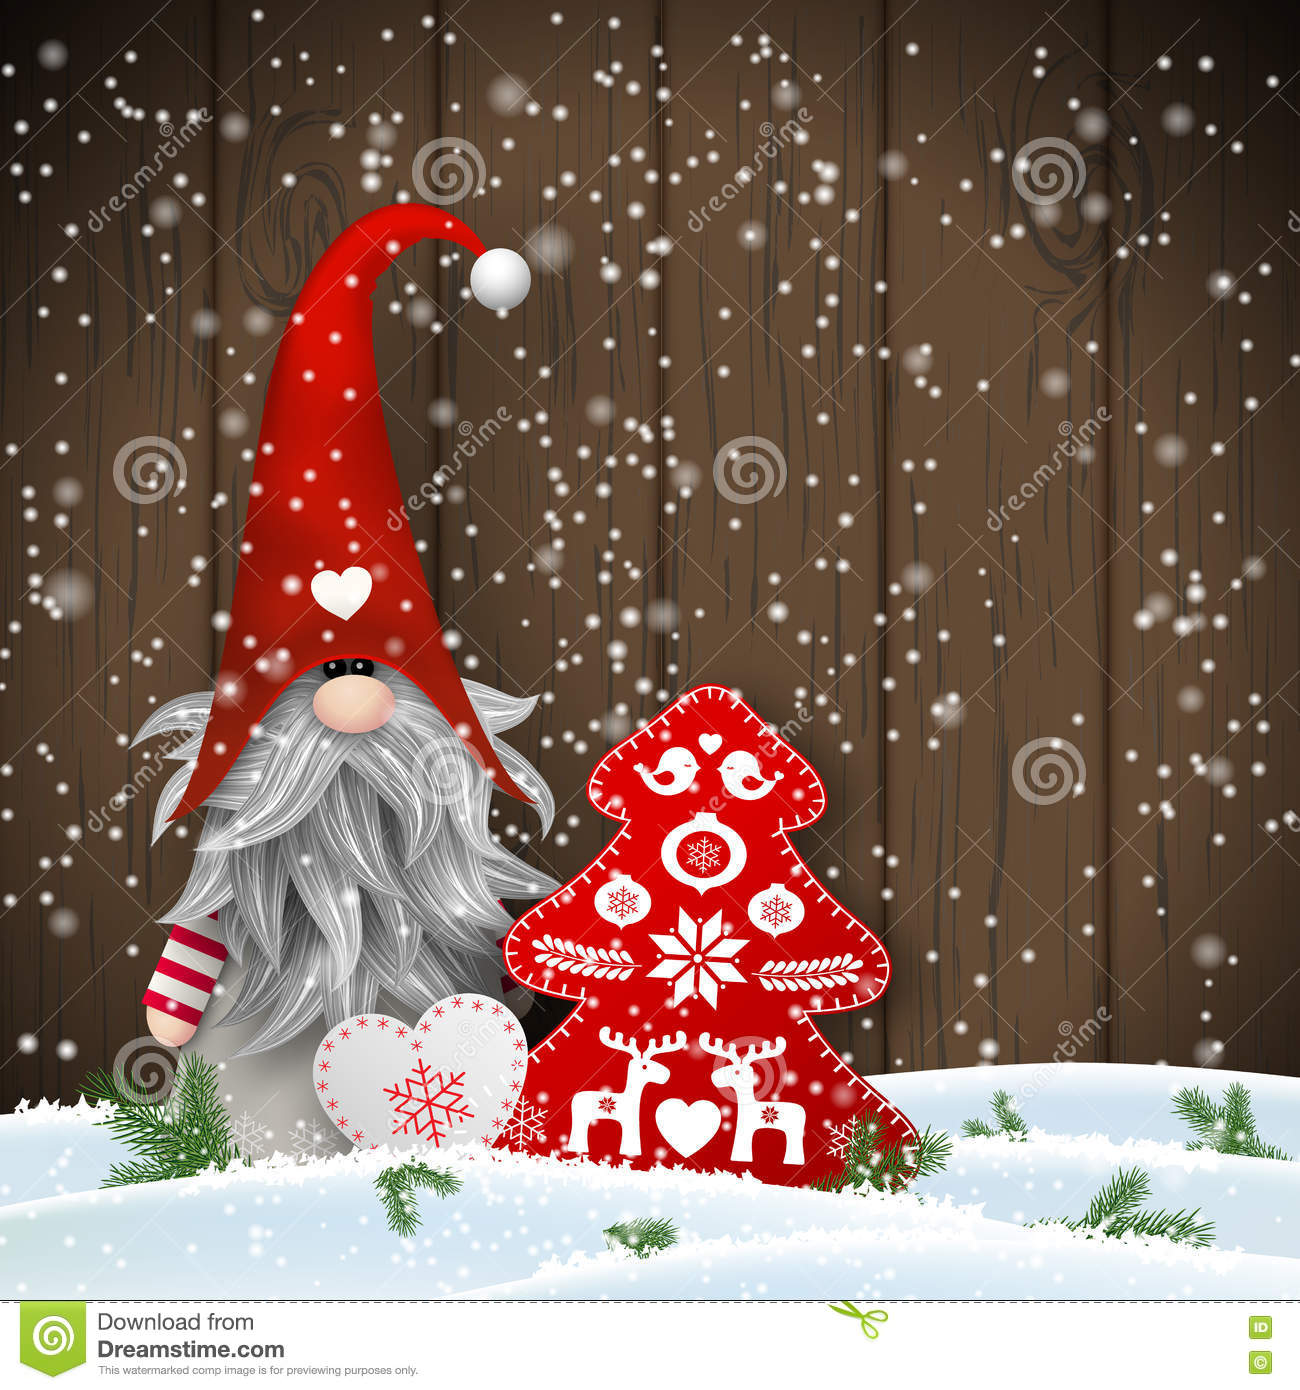 download scandinavian christmas traditional gnome tomte with other seasonal decorations illustration stock vector